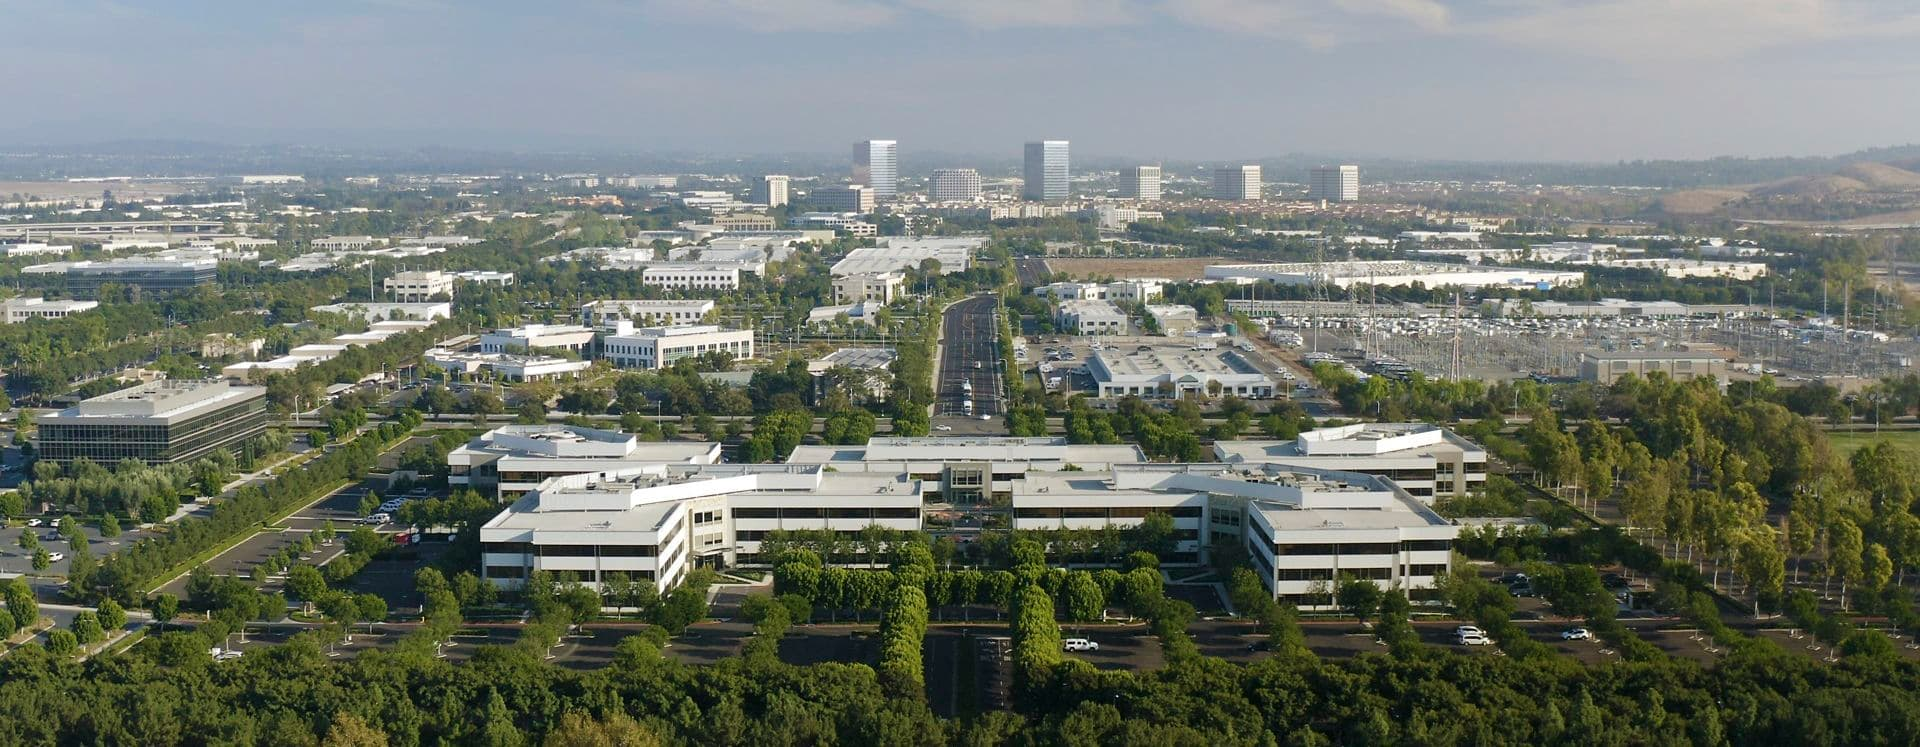 Aerial view of Sand Canyon Business Center in Irvine, CA.